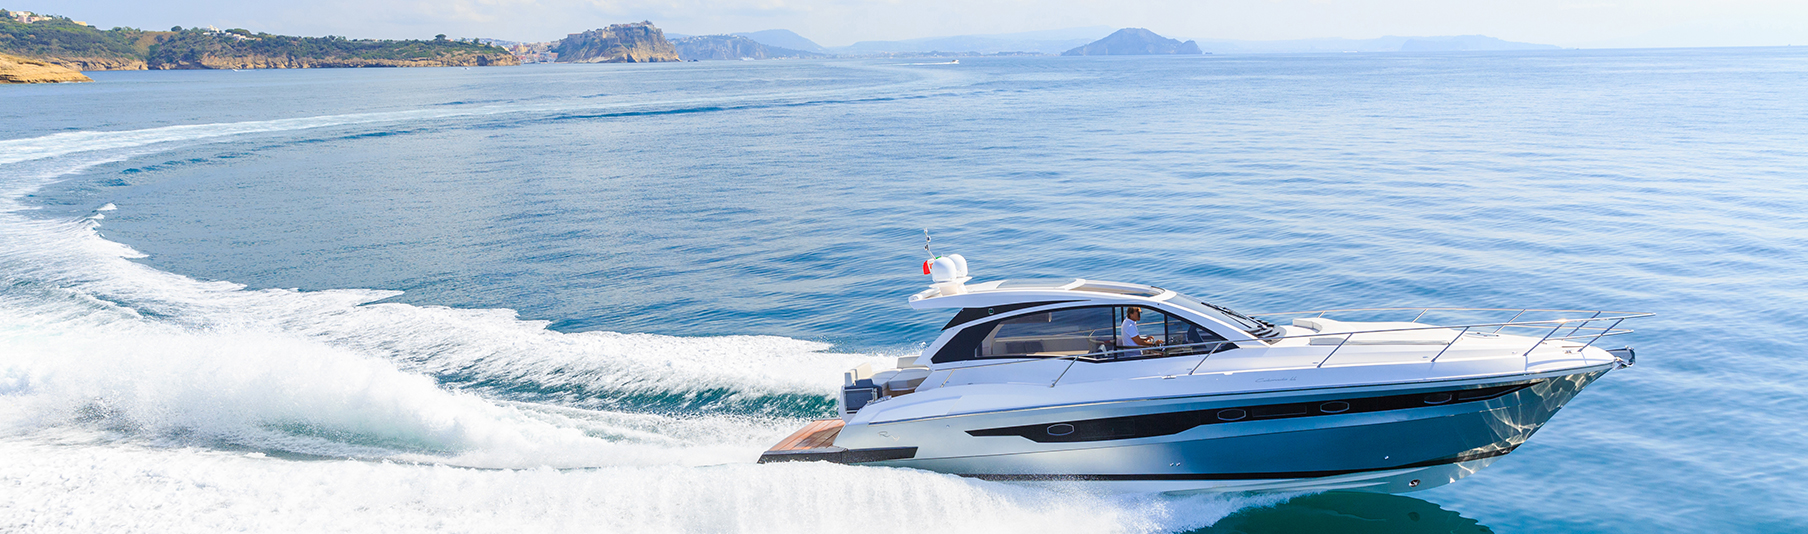 High Net Worth Insurance: A man driving a luxury speed boat across the sea